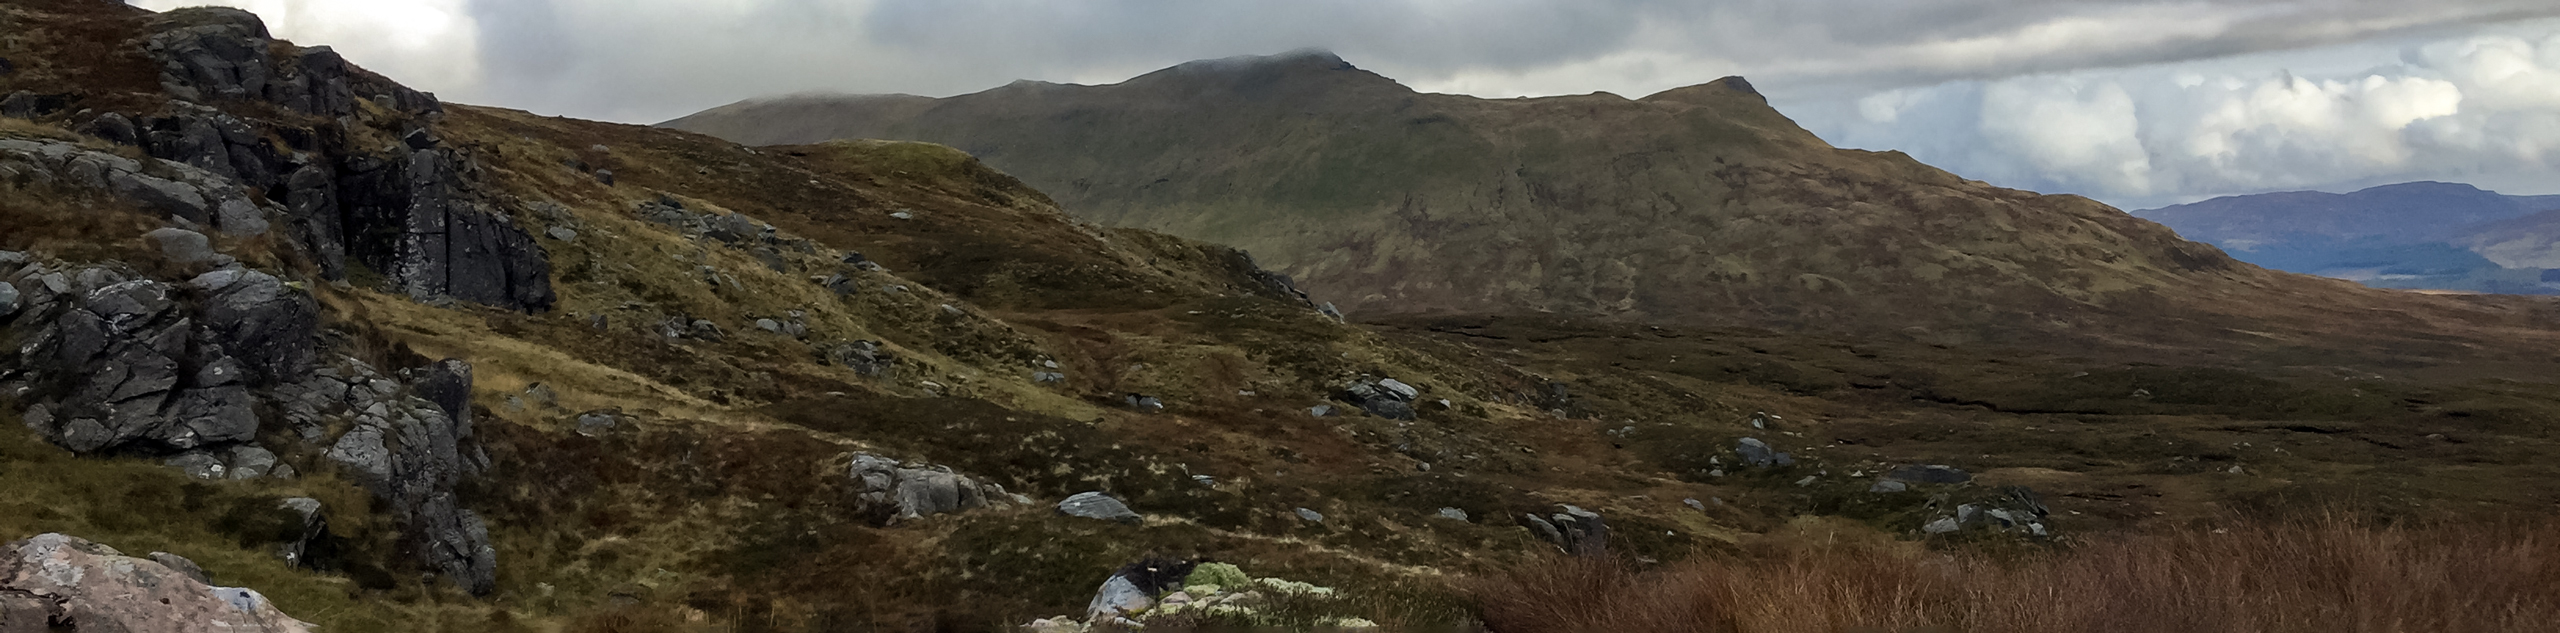 Meall Glas and Sgiath Chuil Walk